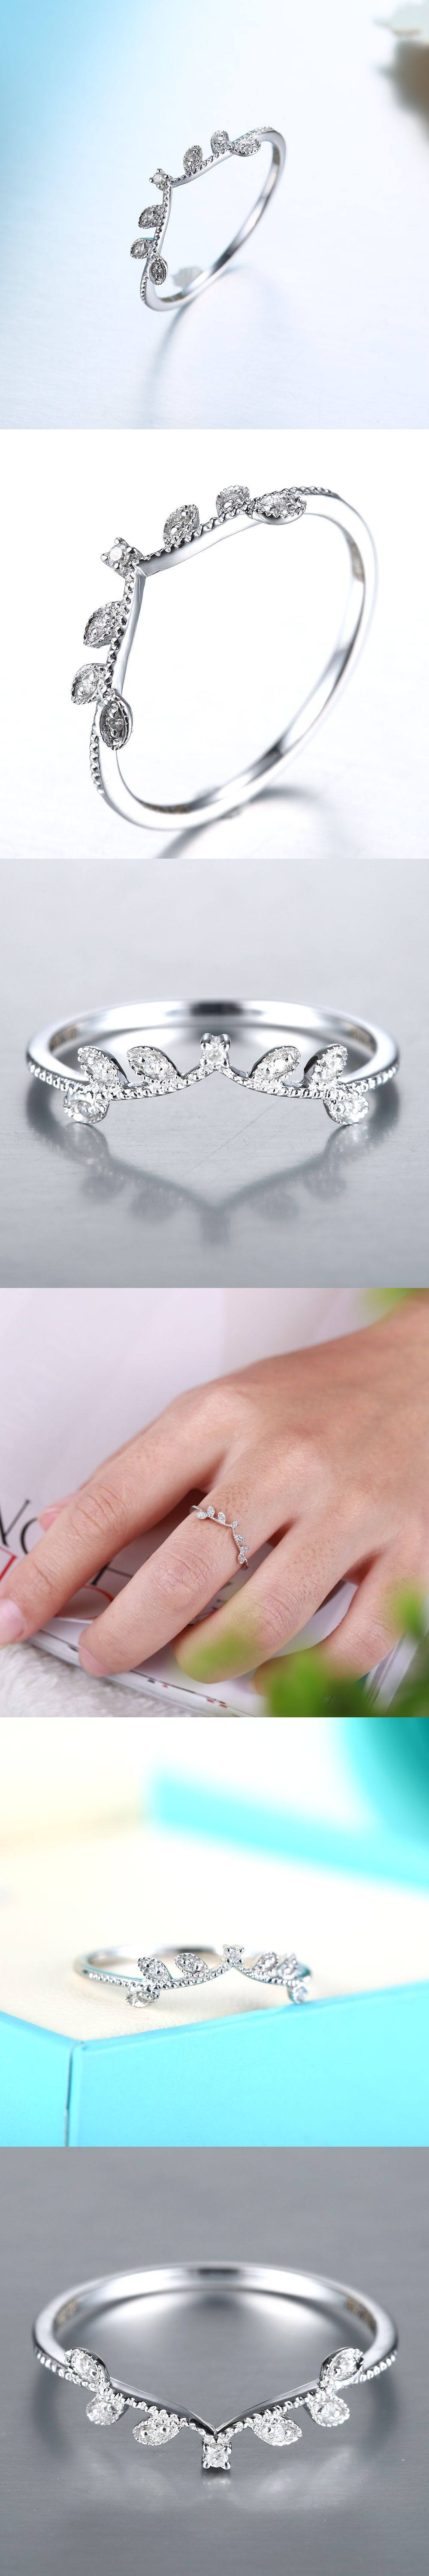 womens princess band gold cut rings white image bands ring wedding diamond